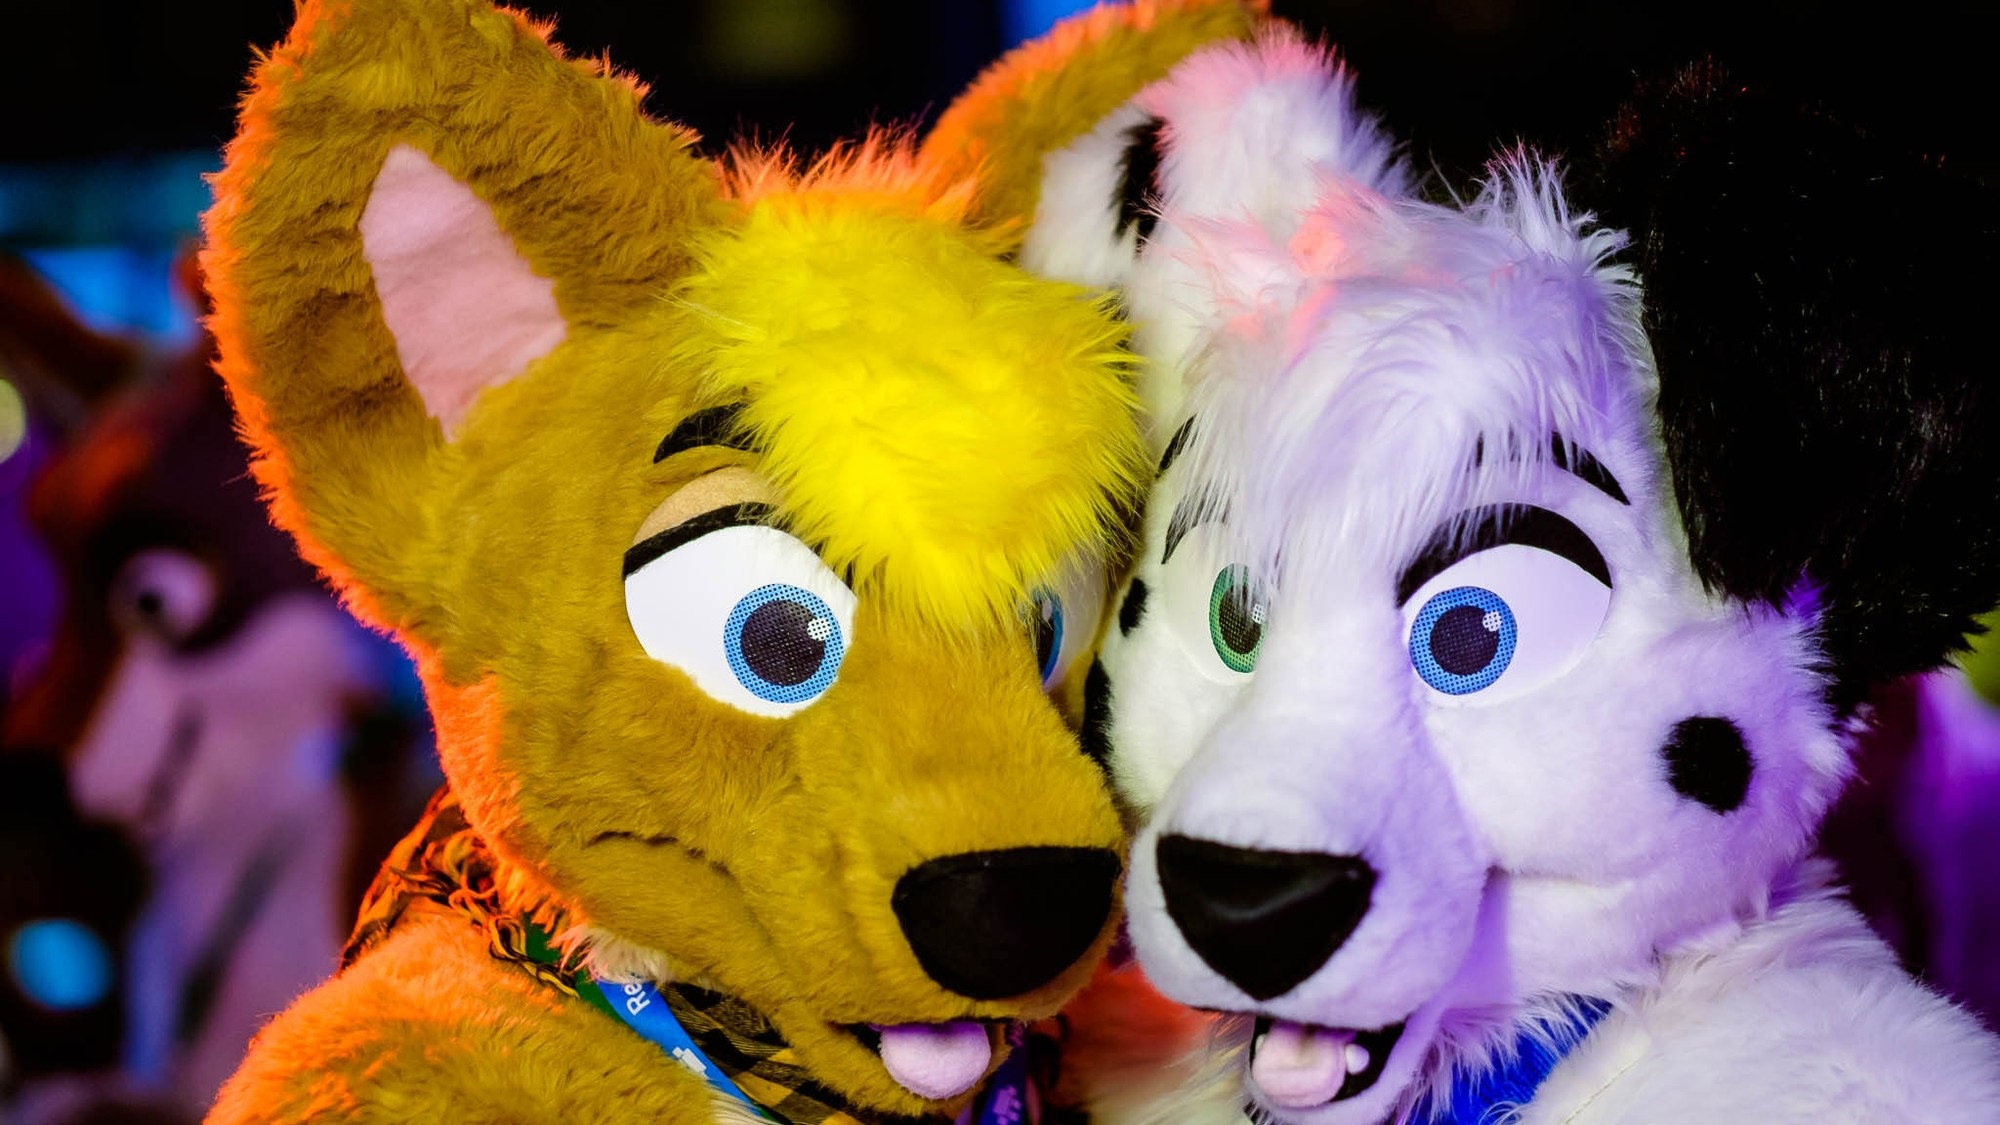 Furry Dating Site Shuts Down Because of FOSTA - VICE